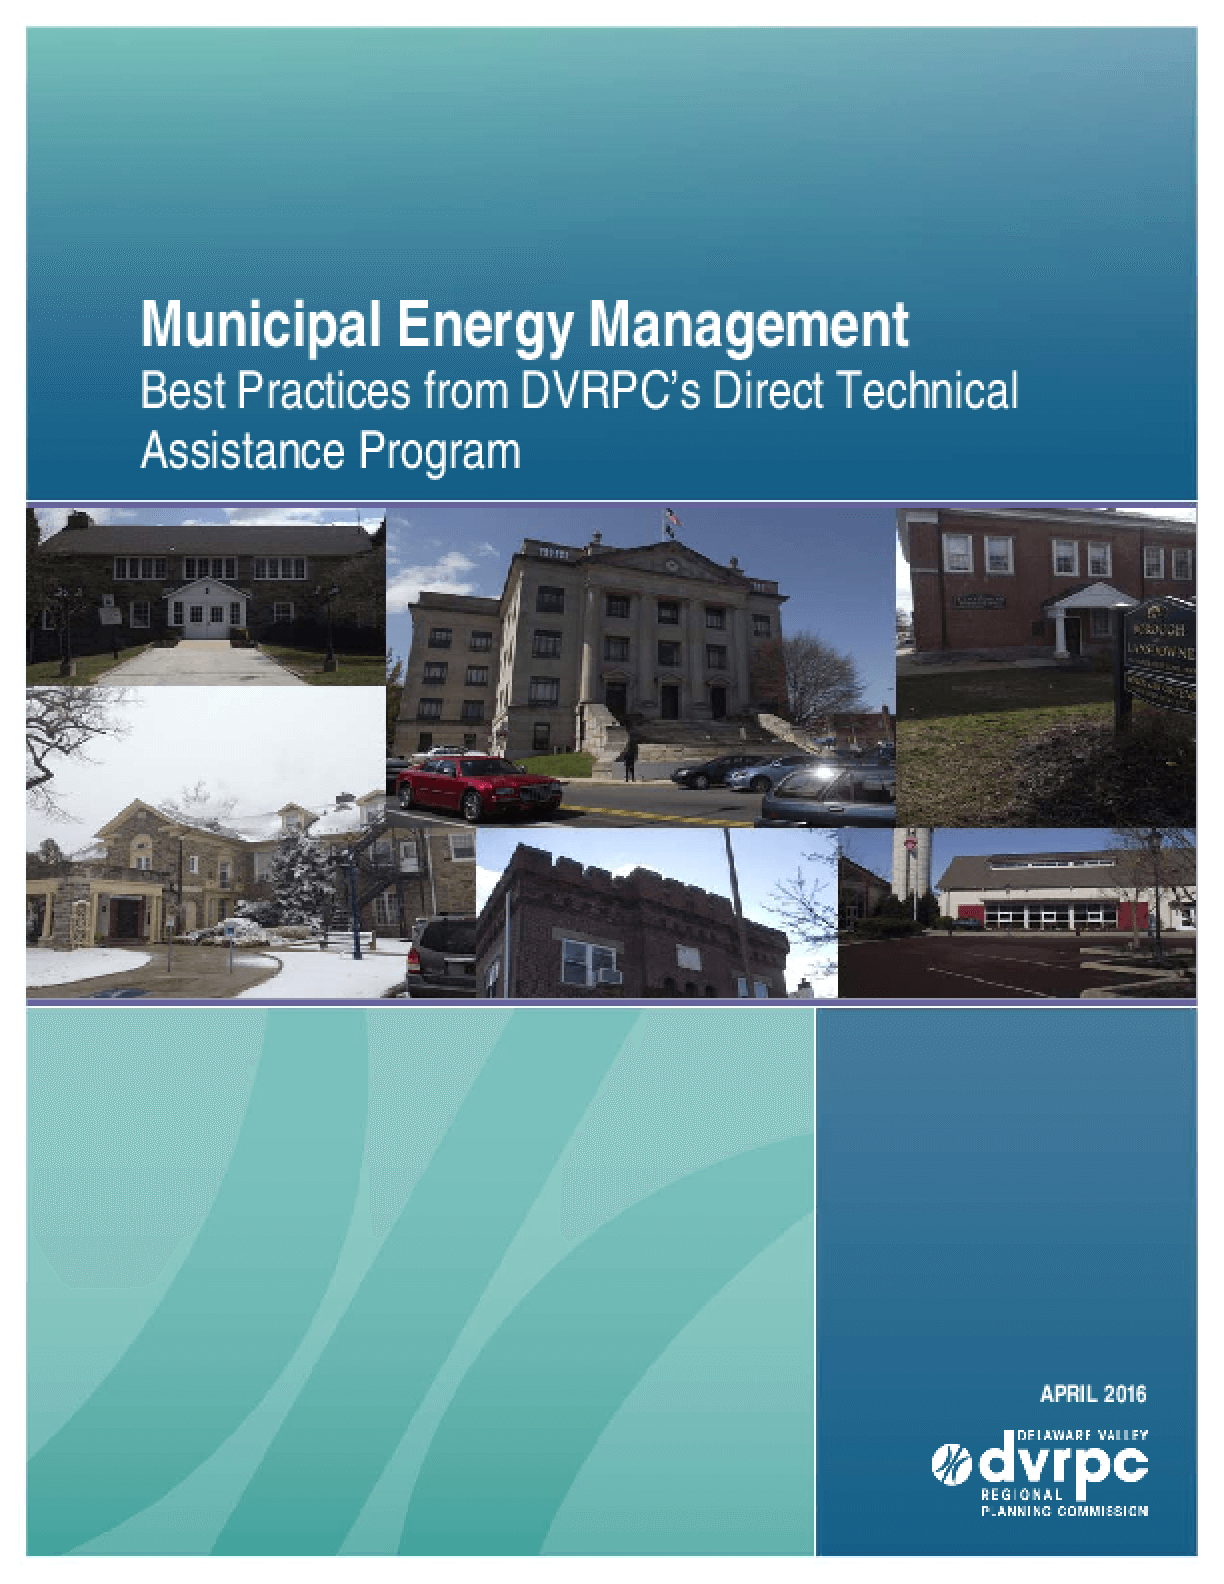 Municipal Energy Management: Best Practices from DVRPC's Direct Technical Assistance Program